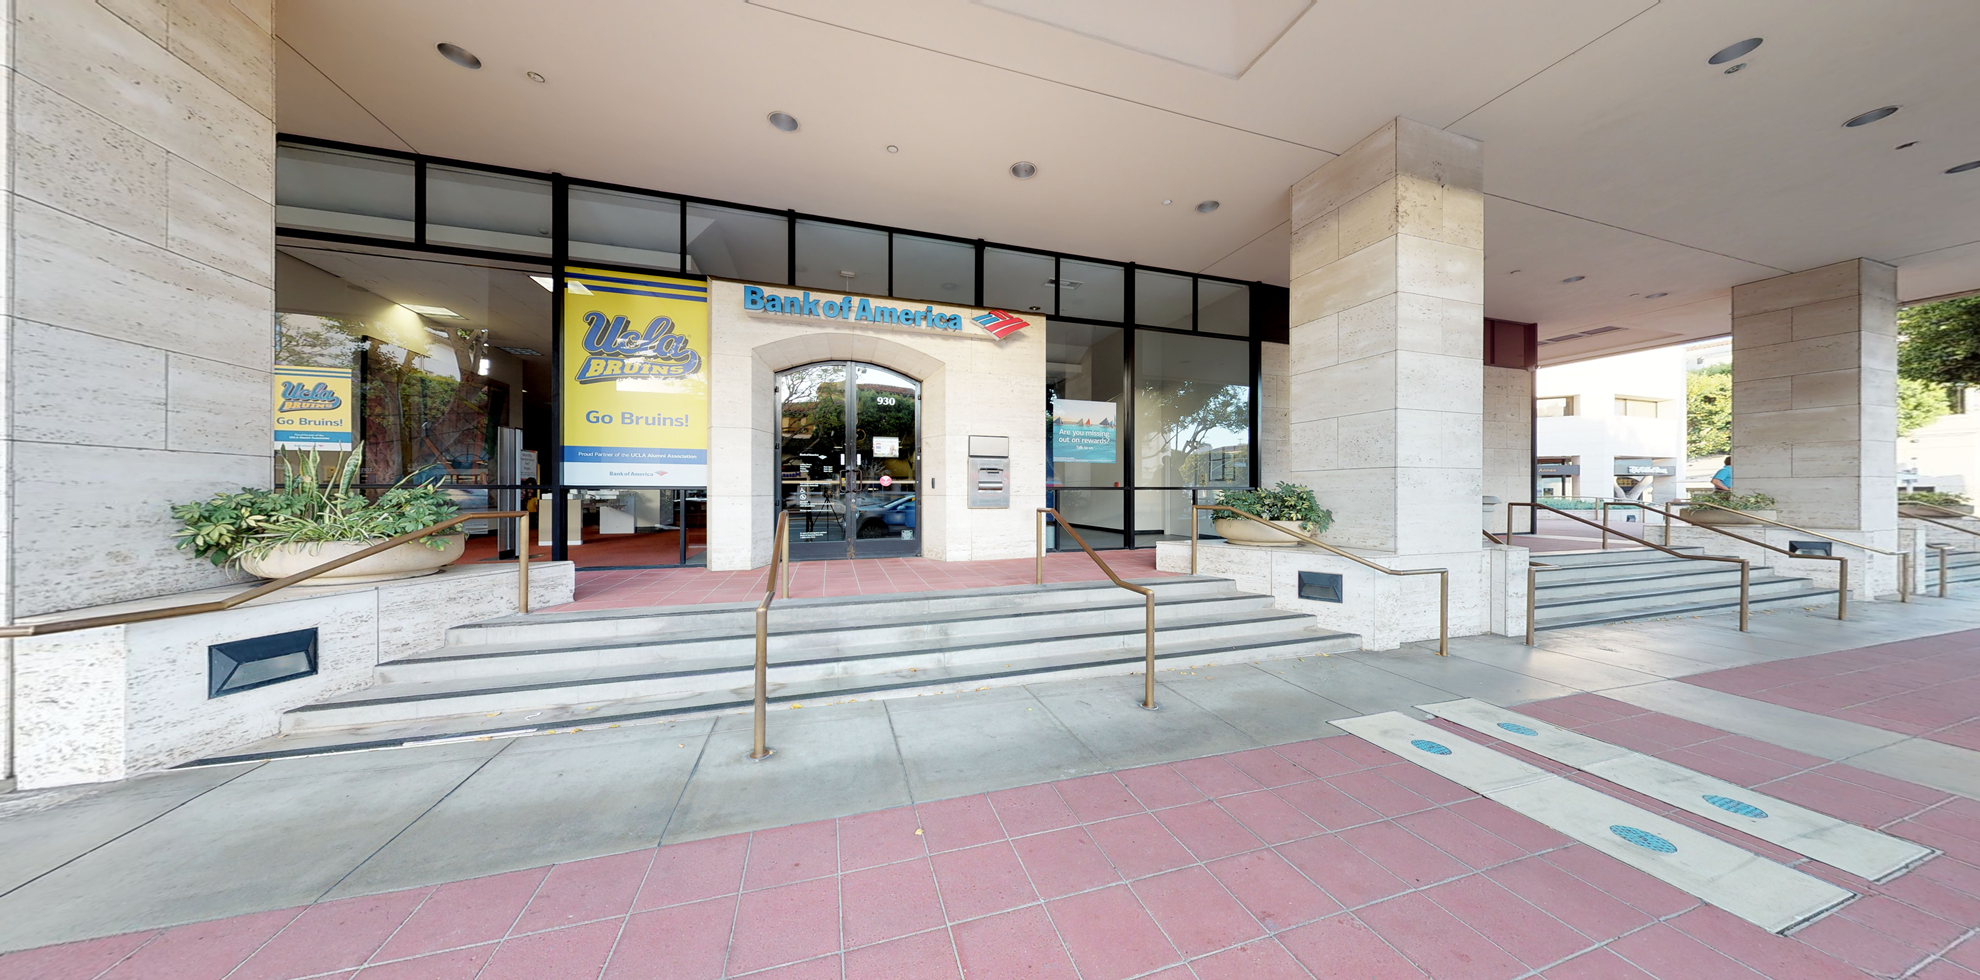 Bank of America financial center with walk-up ATM   930 Westwood Blvd, Los Angeles, CA 90024